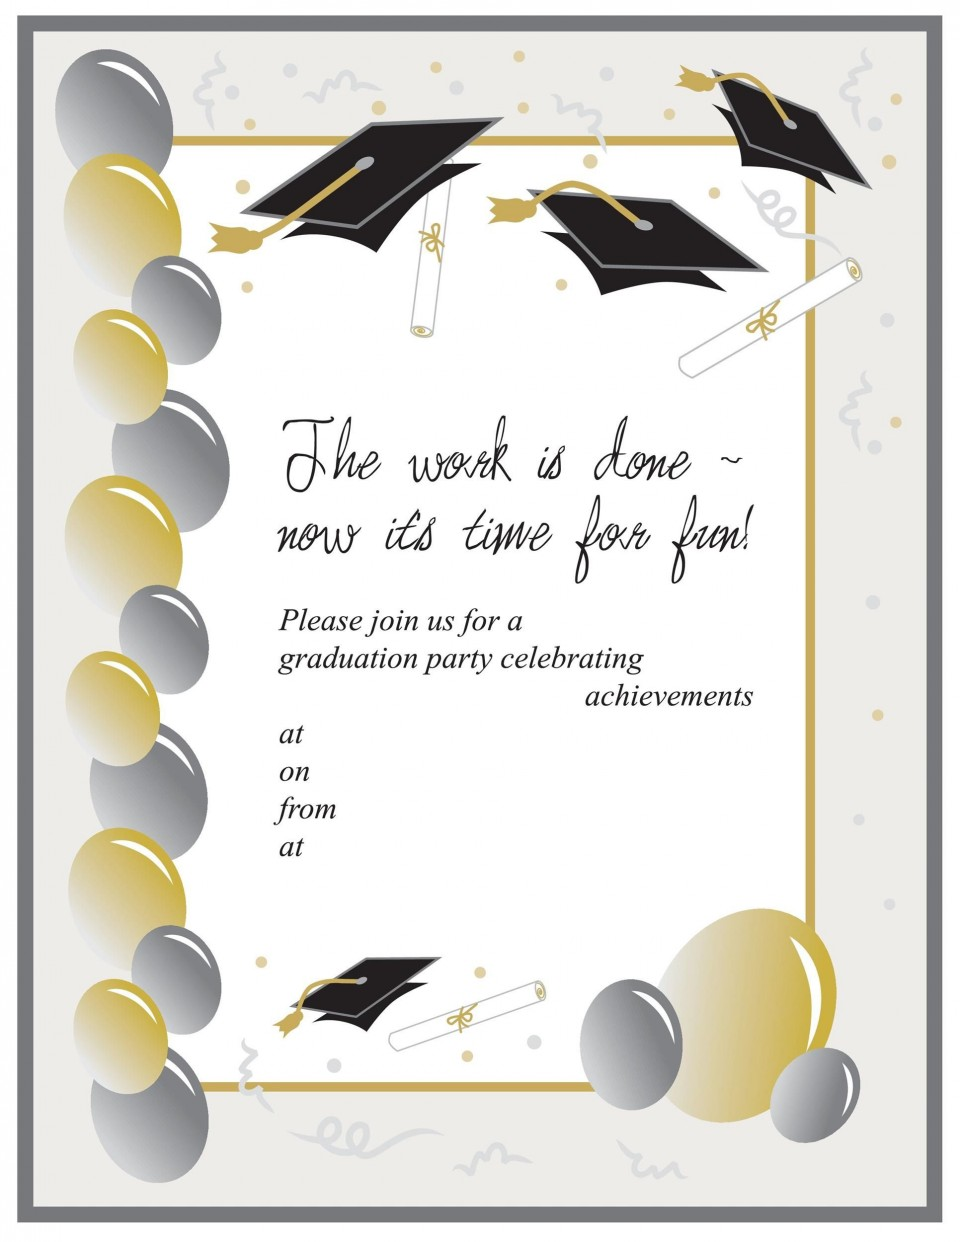 008 Formidable Free Printable Graduation Invitation Template Example  Party For Word960